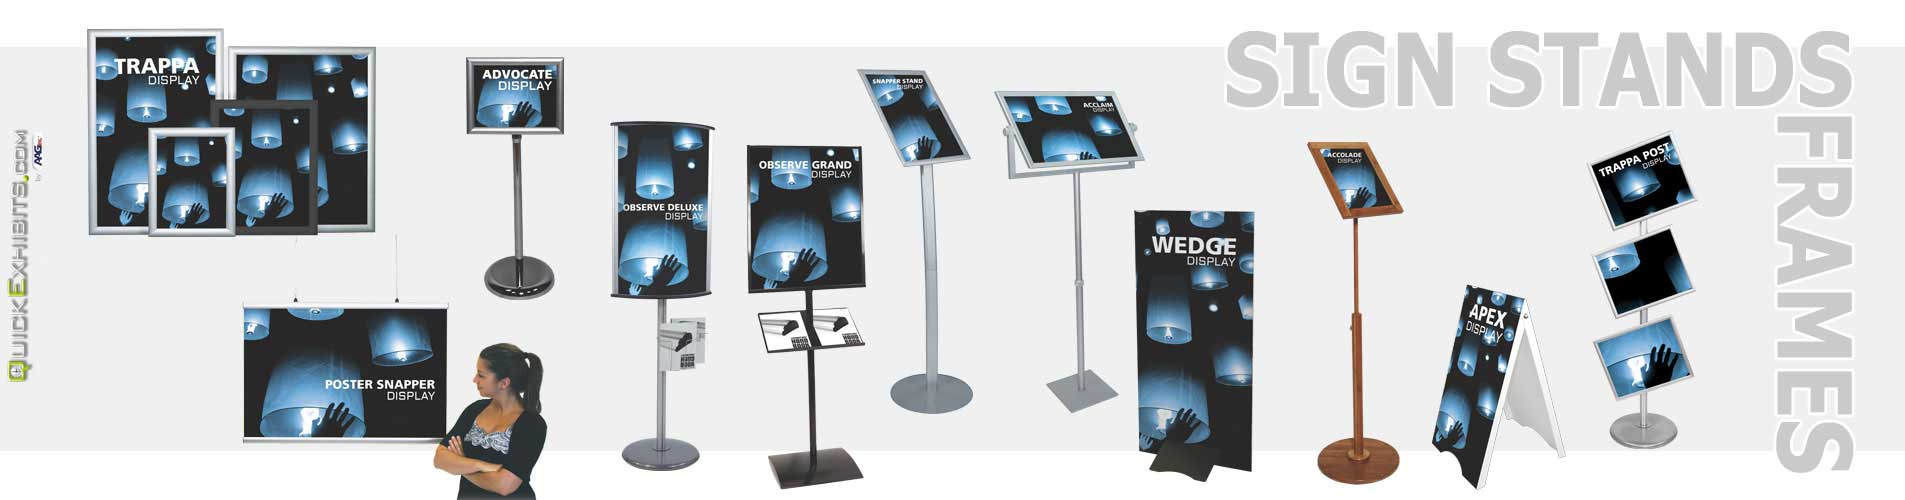 Sign Stands & Frames